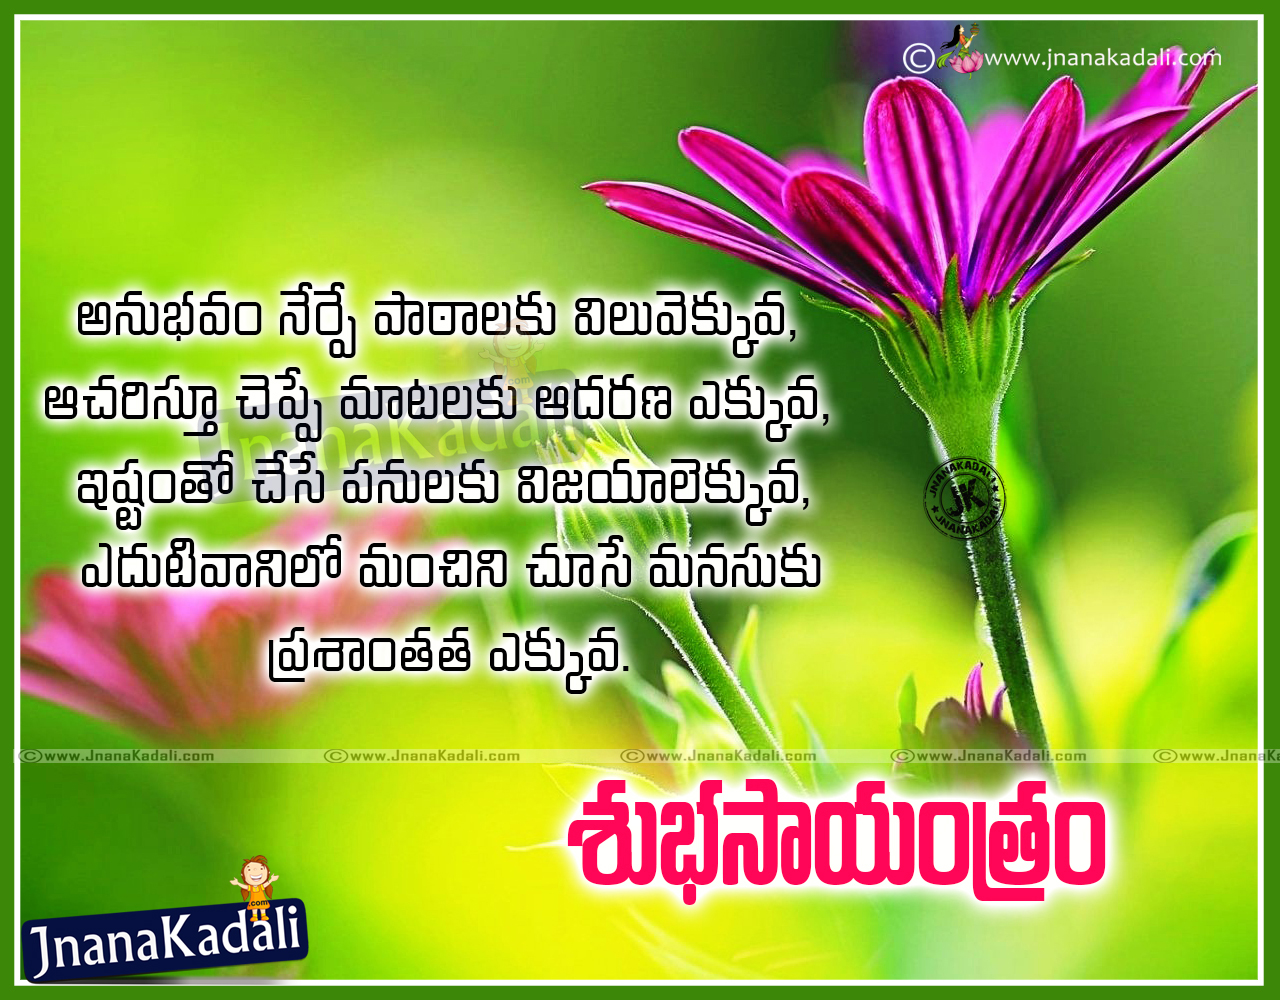 Latest Quotes About Life Top Telugu Famous Good Evening Inspirational Quotes And Sayings